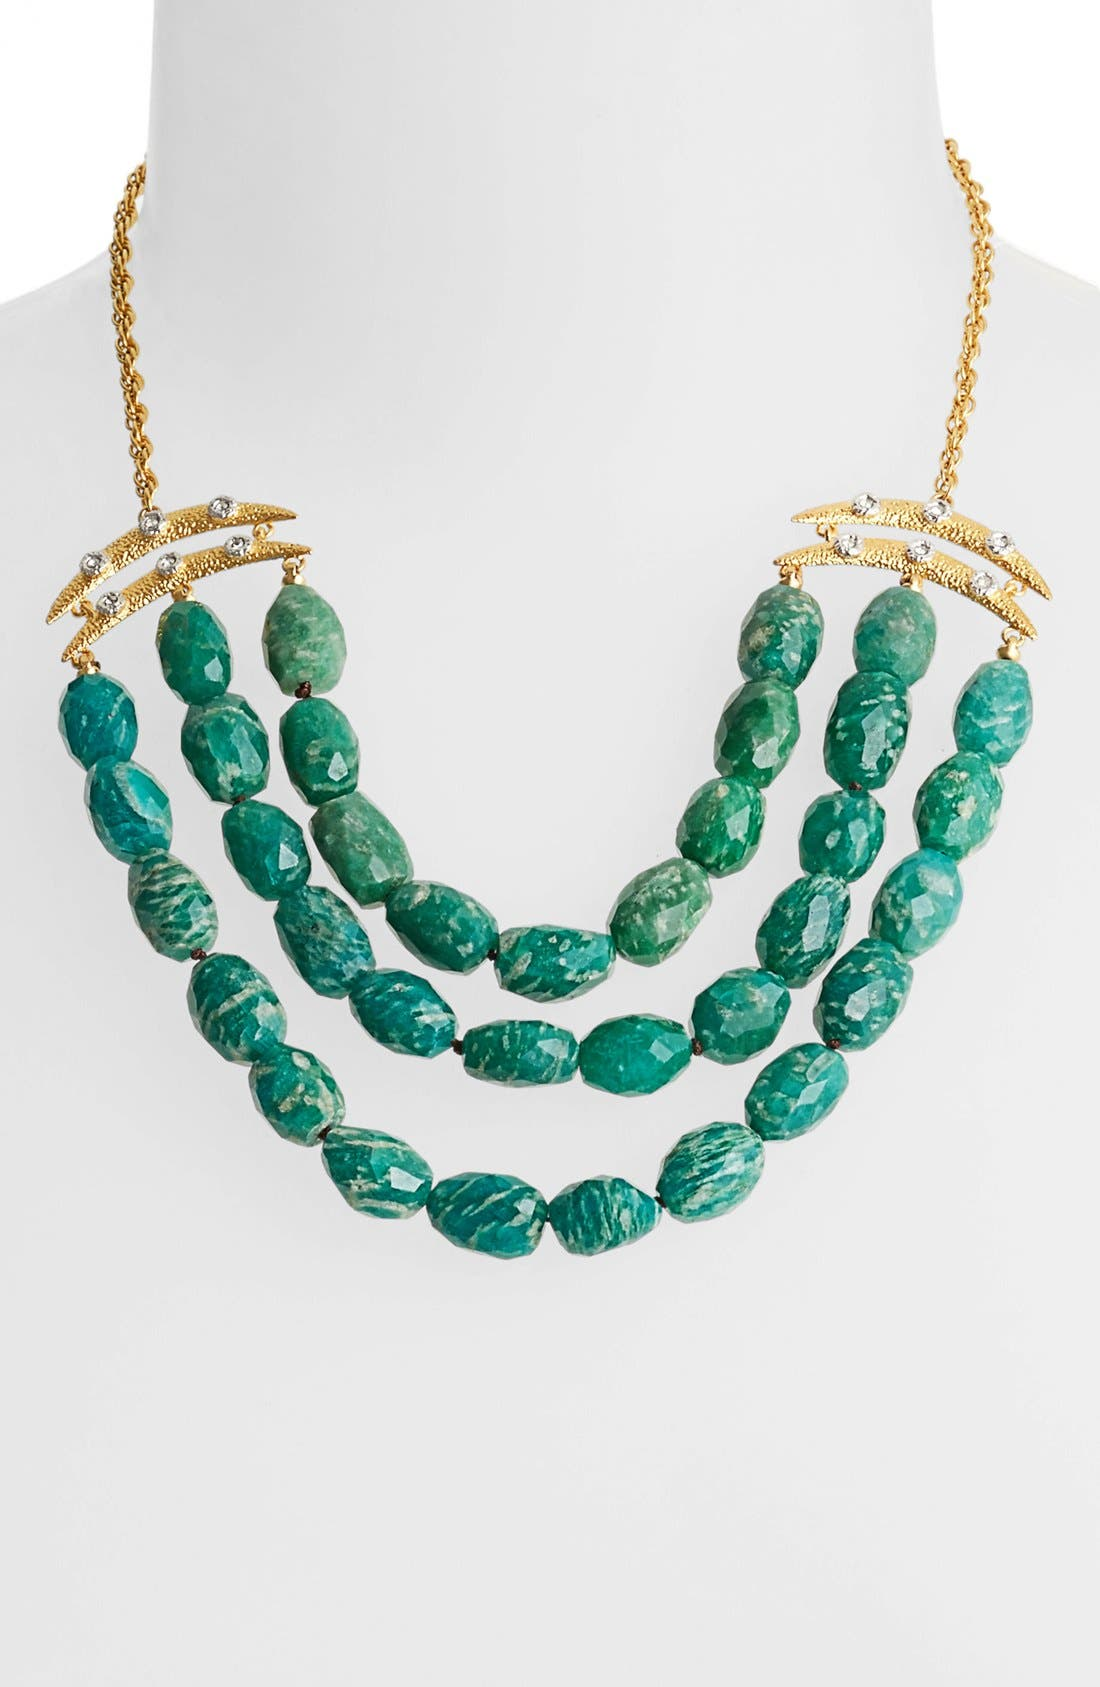 Main Image - Alexis Bittar 'Elements' Beaded Bib Necklace